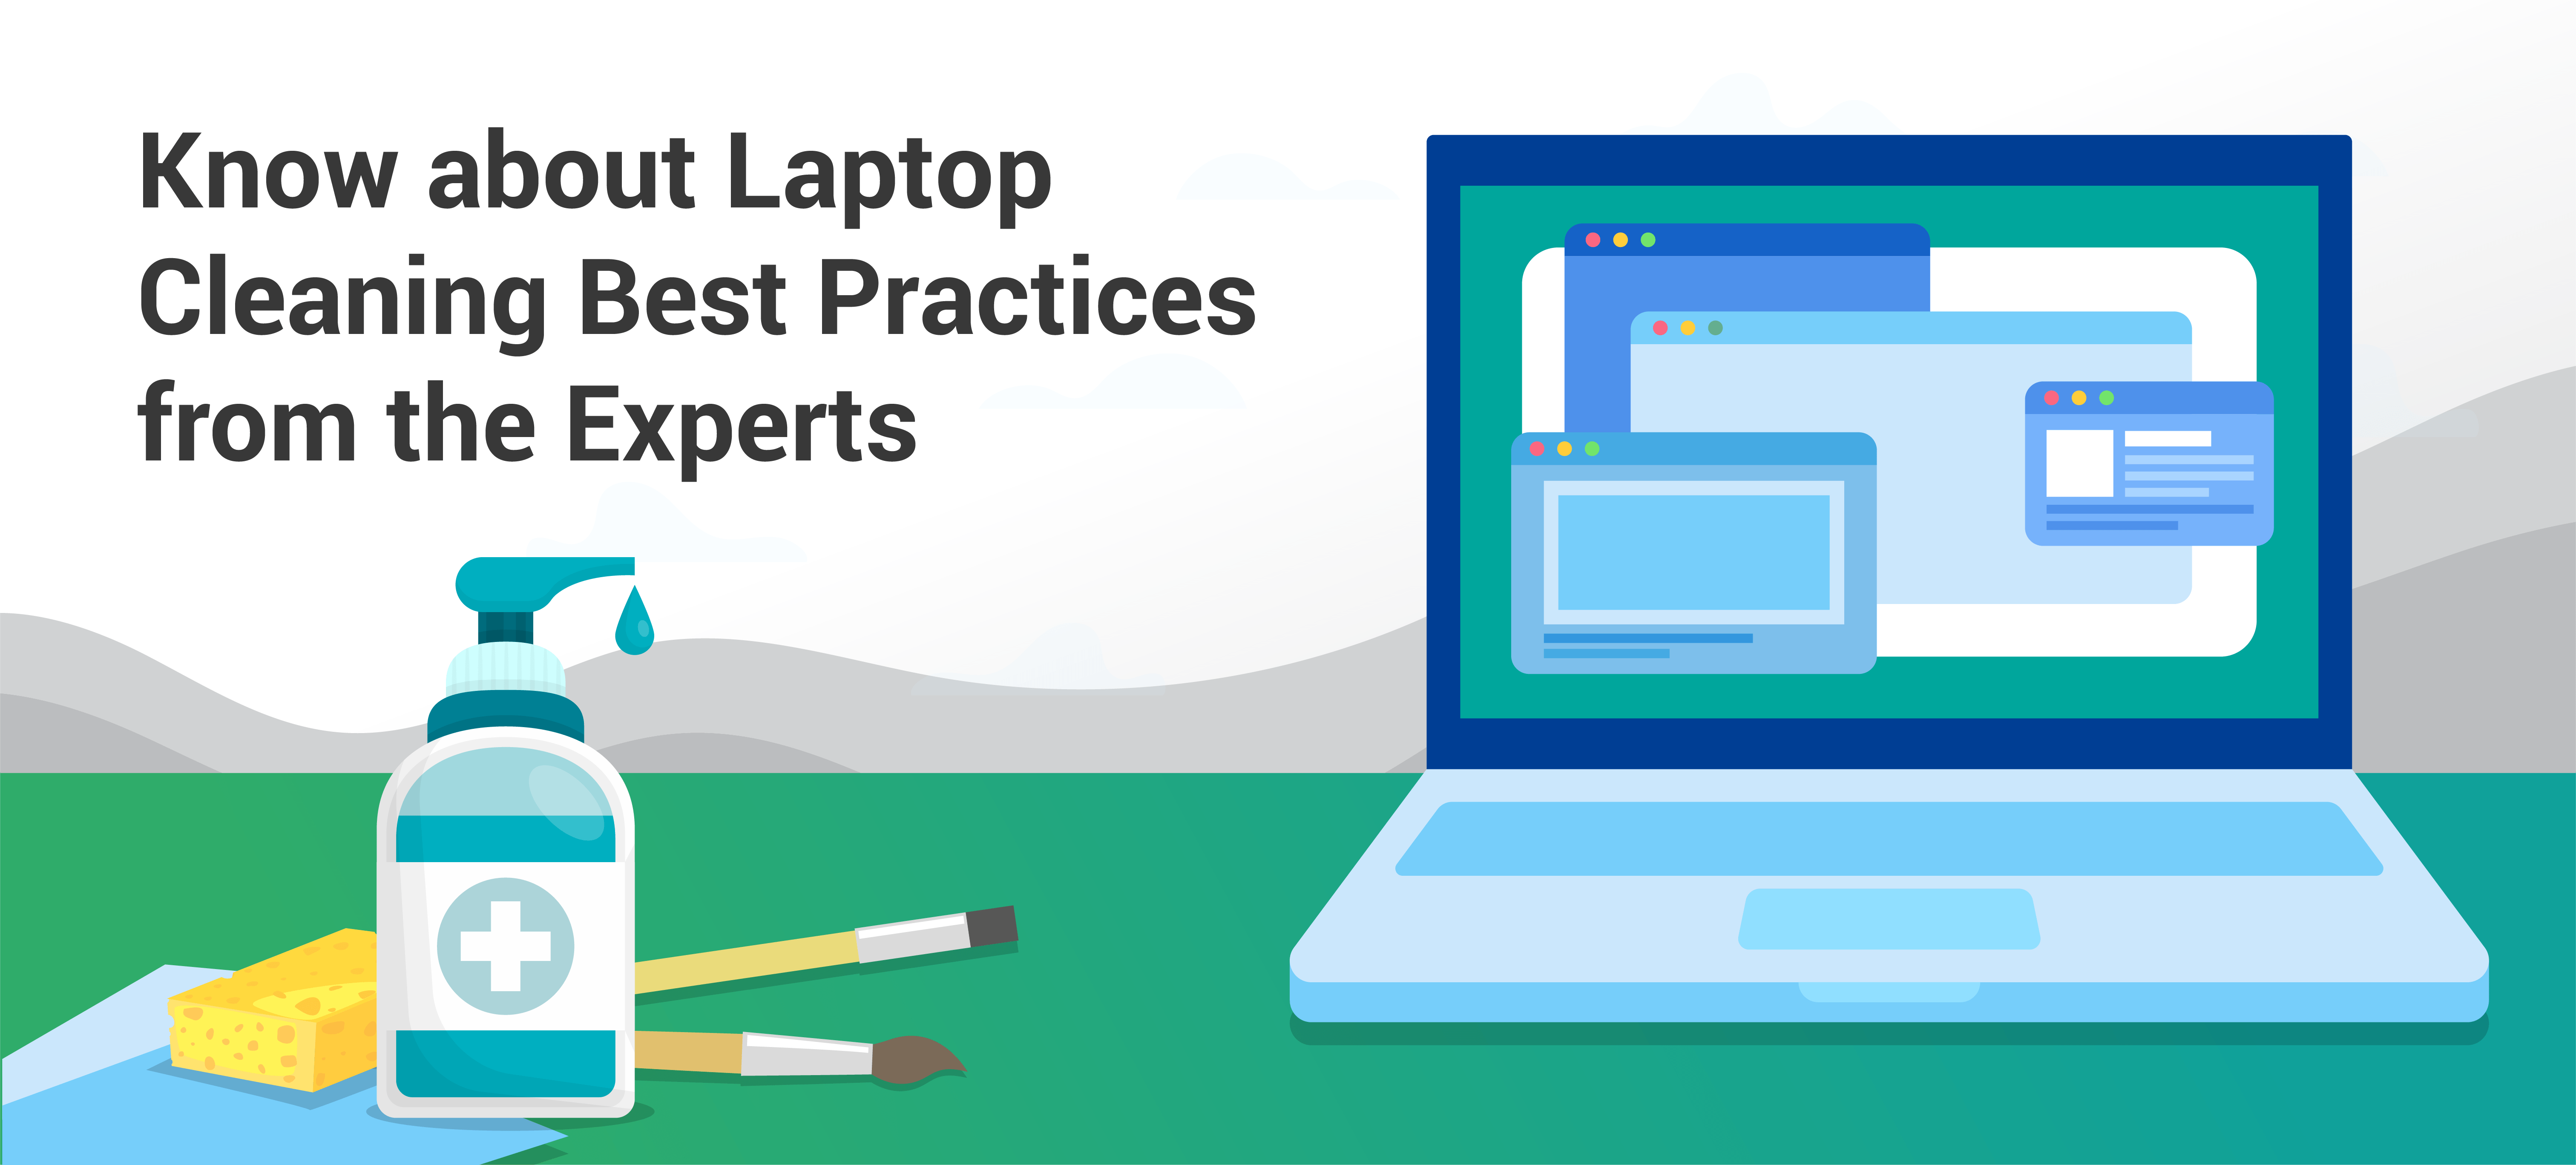 Laptop Cleaning Tips From IT Experts